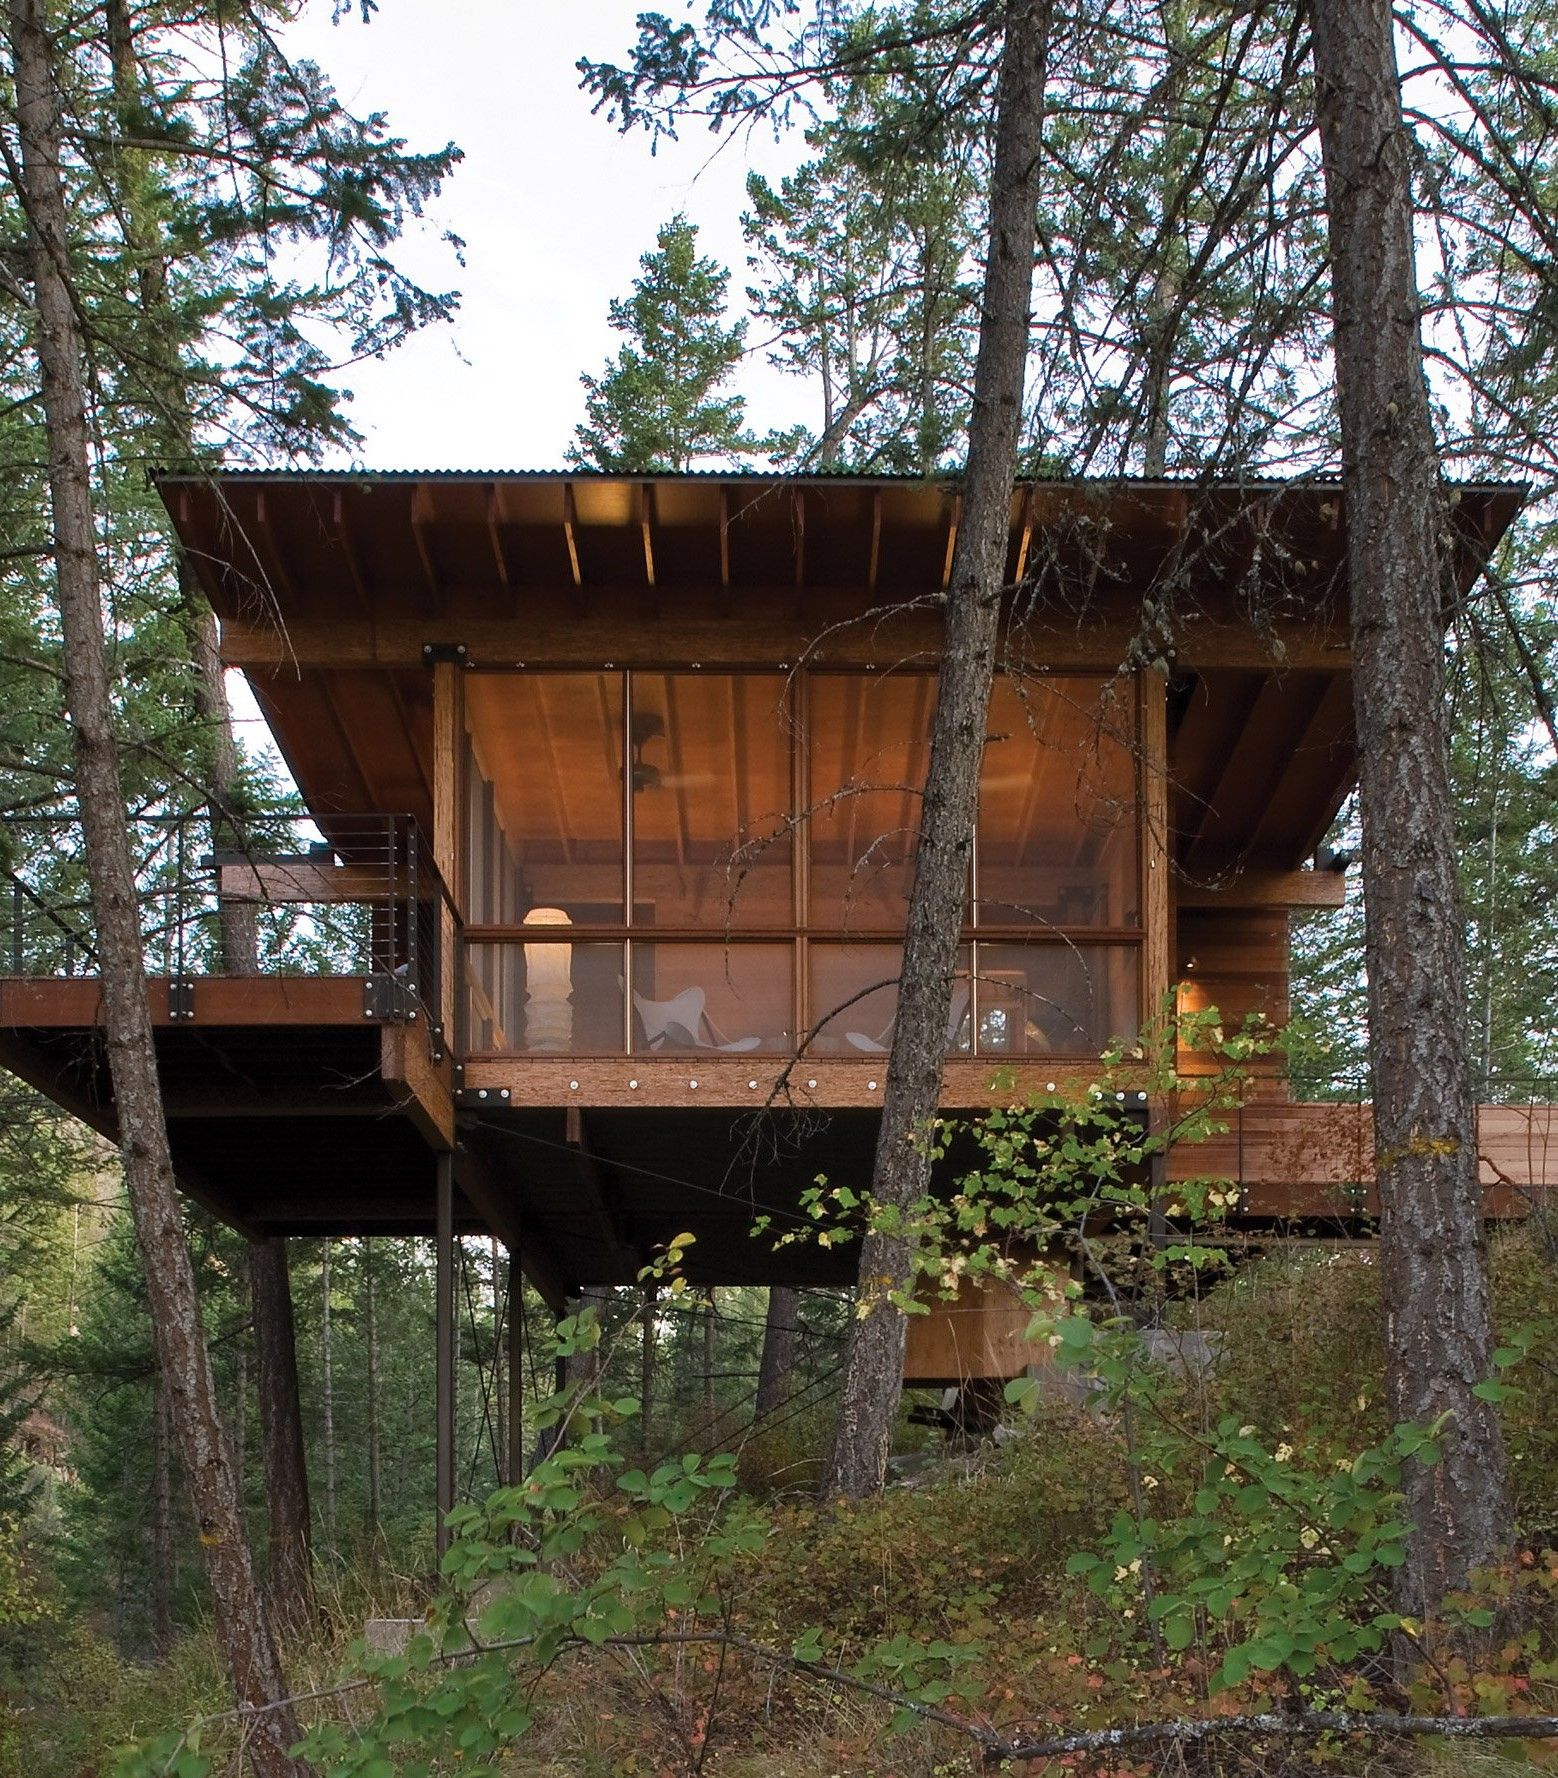 Cottage On Stilts By Andersson Wise Architects: Rural Montana Cabin Is Built On A Granite Cliff Over